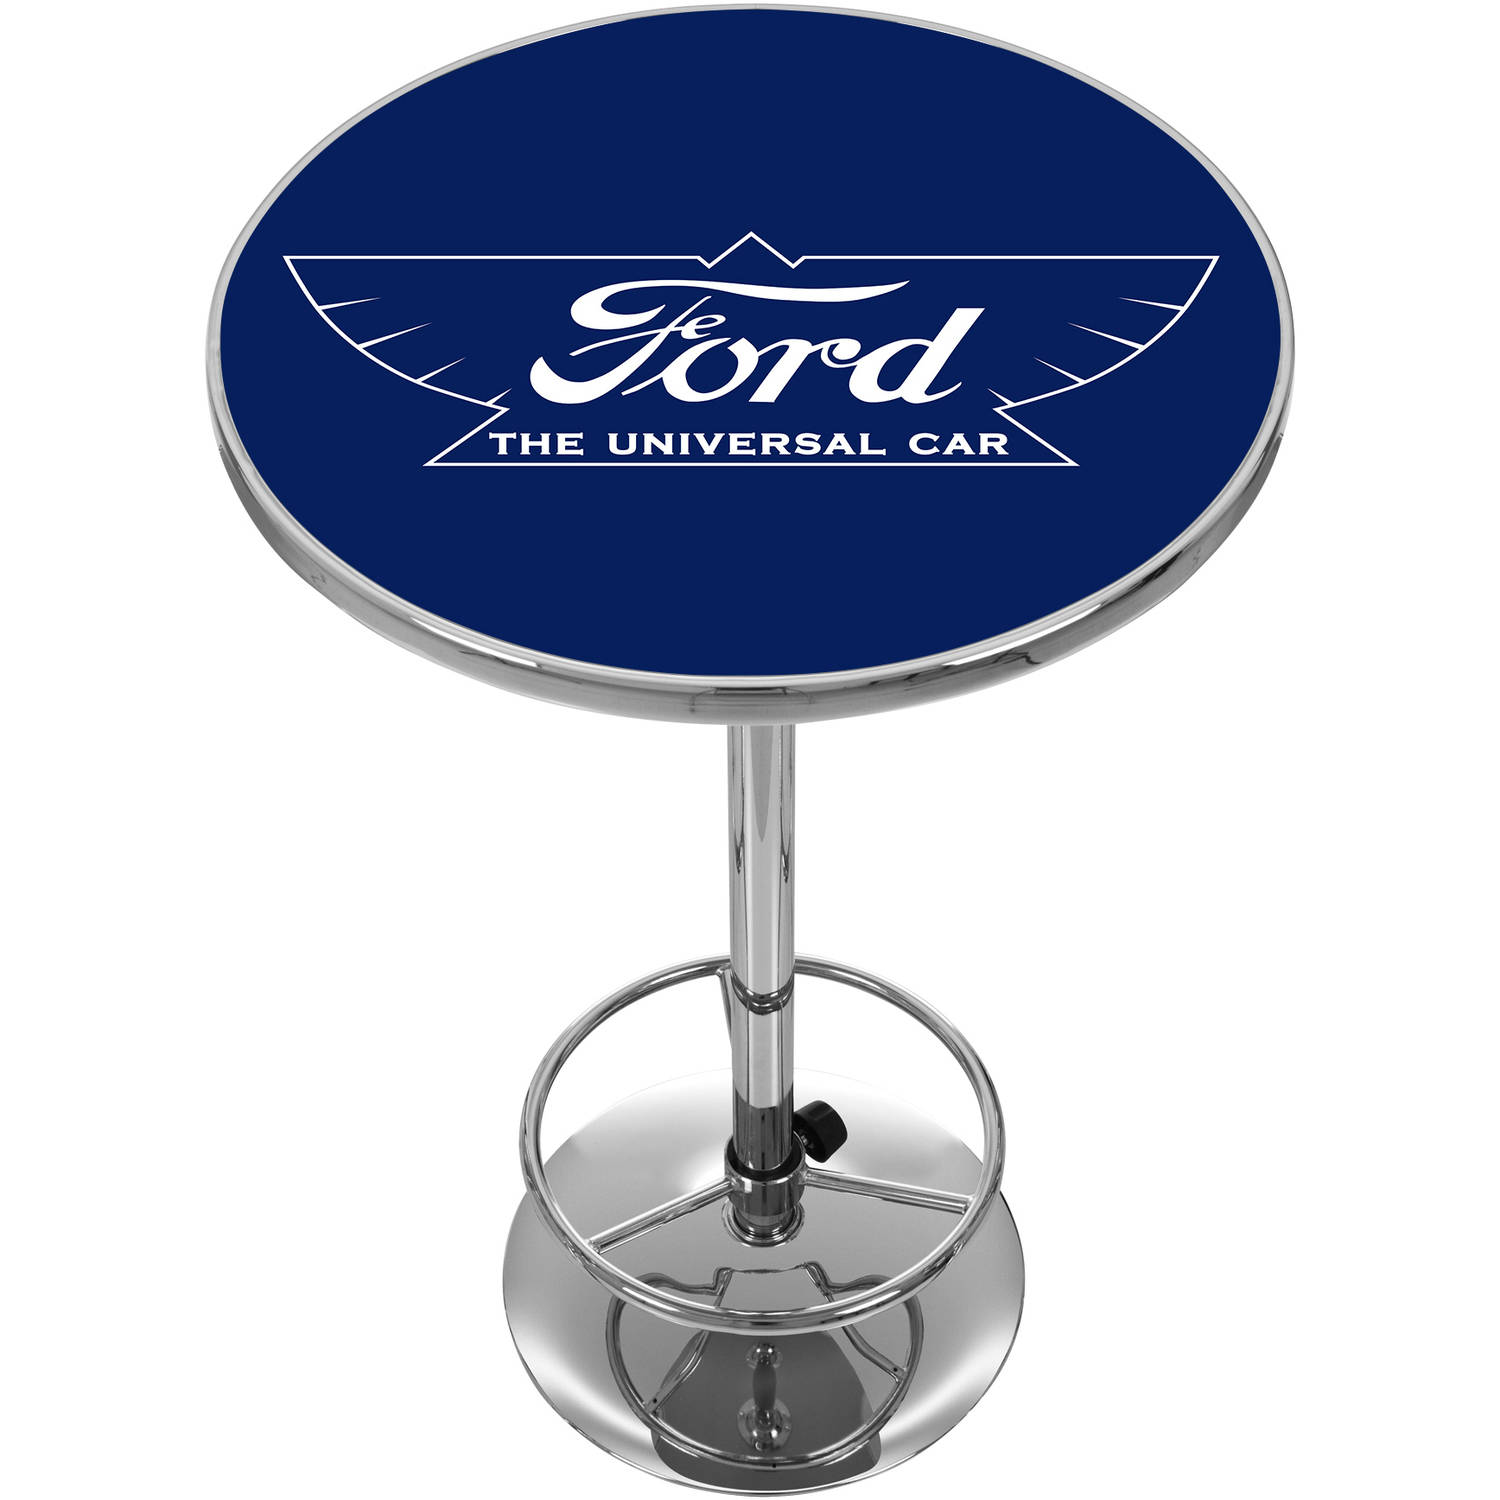 Ford Chrome Pub Table, The Universal Car